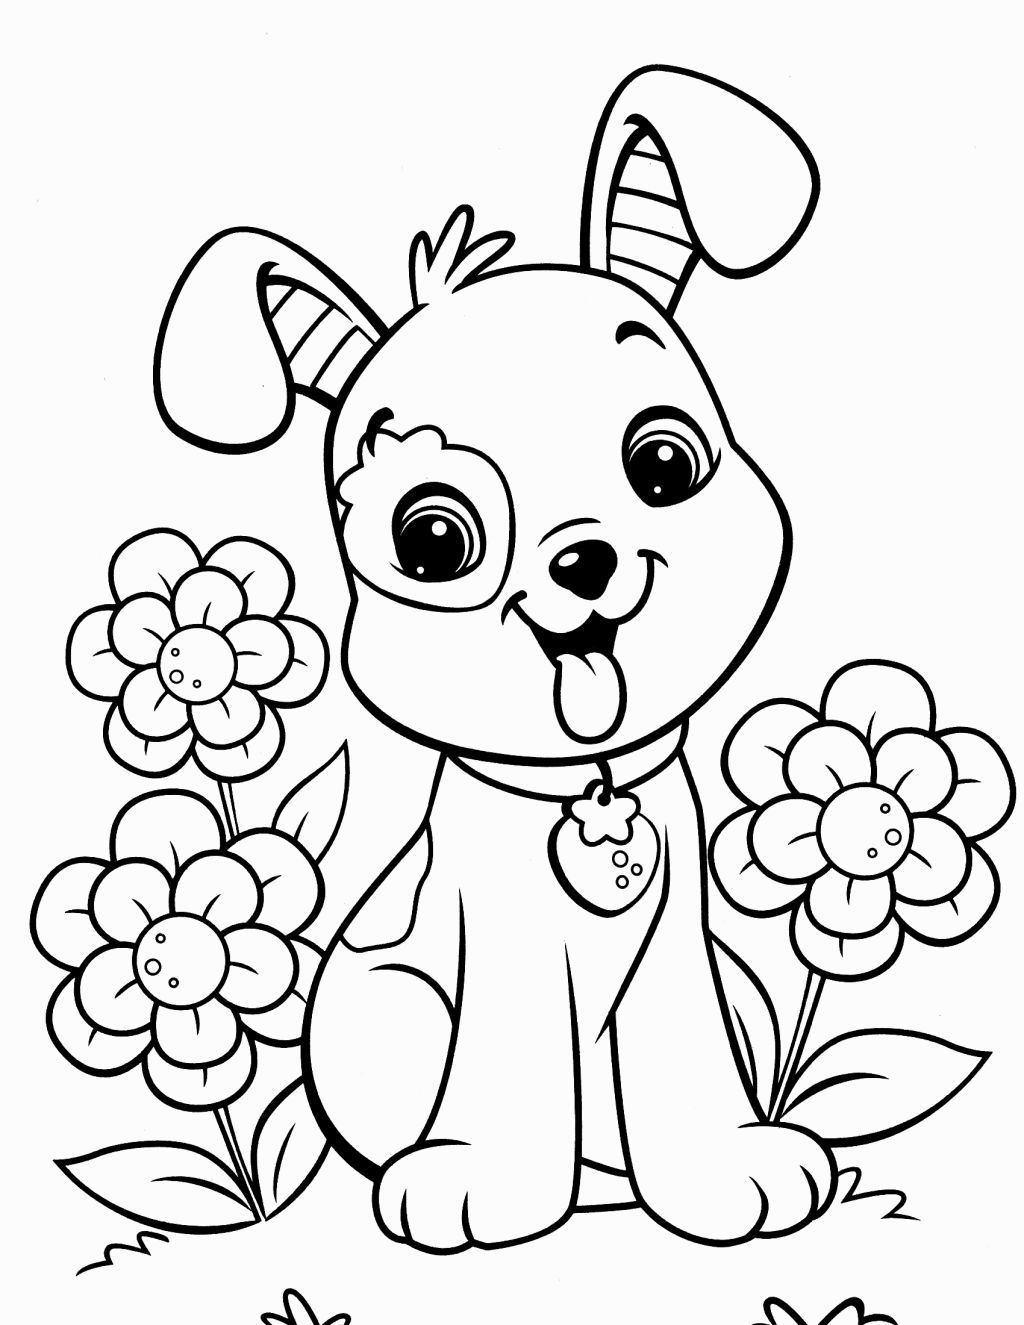 Dog Coloring Pages For Kids Puppy Coloring Pages Dog Coloring Page Easy Coloring Pages